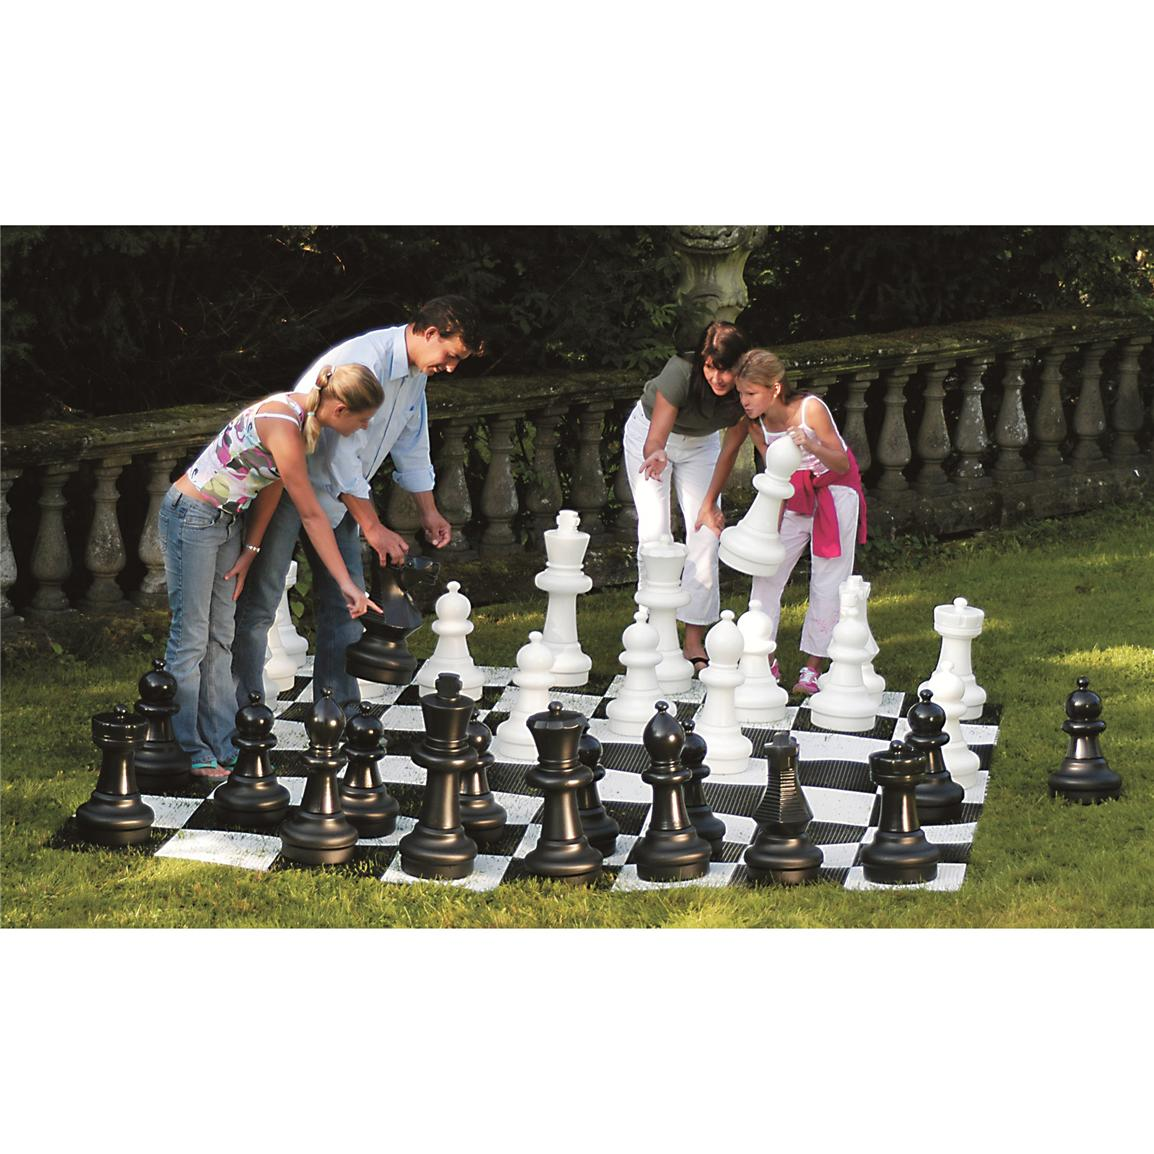 Kettler® Large Chess Pieces